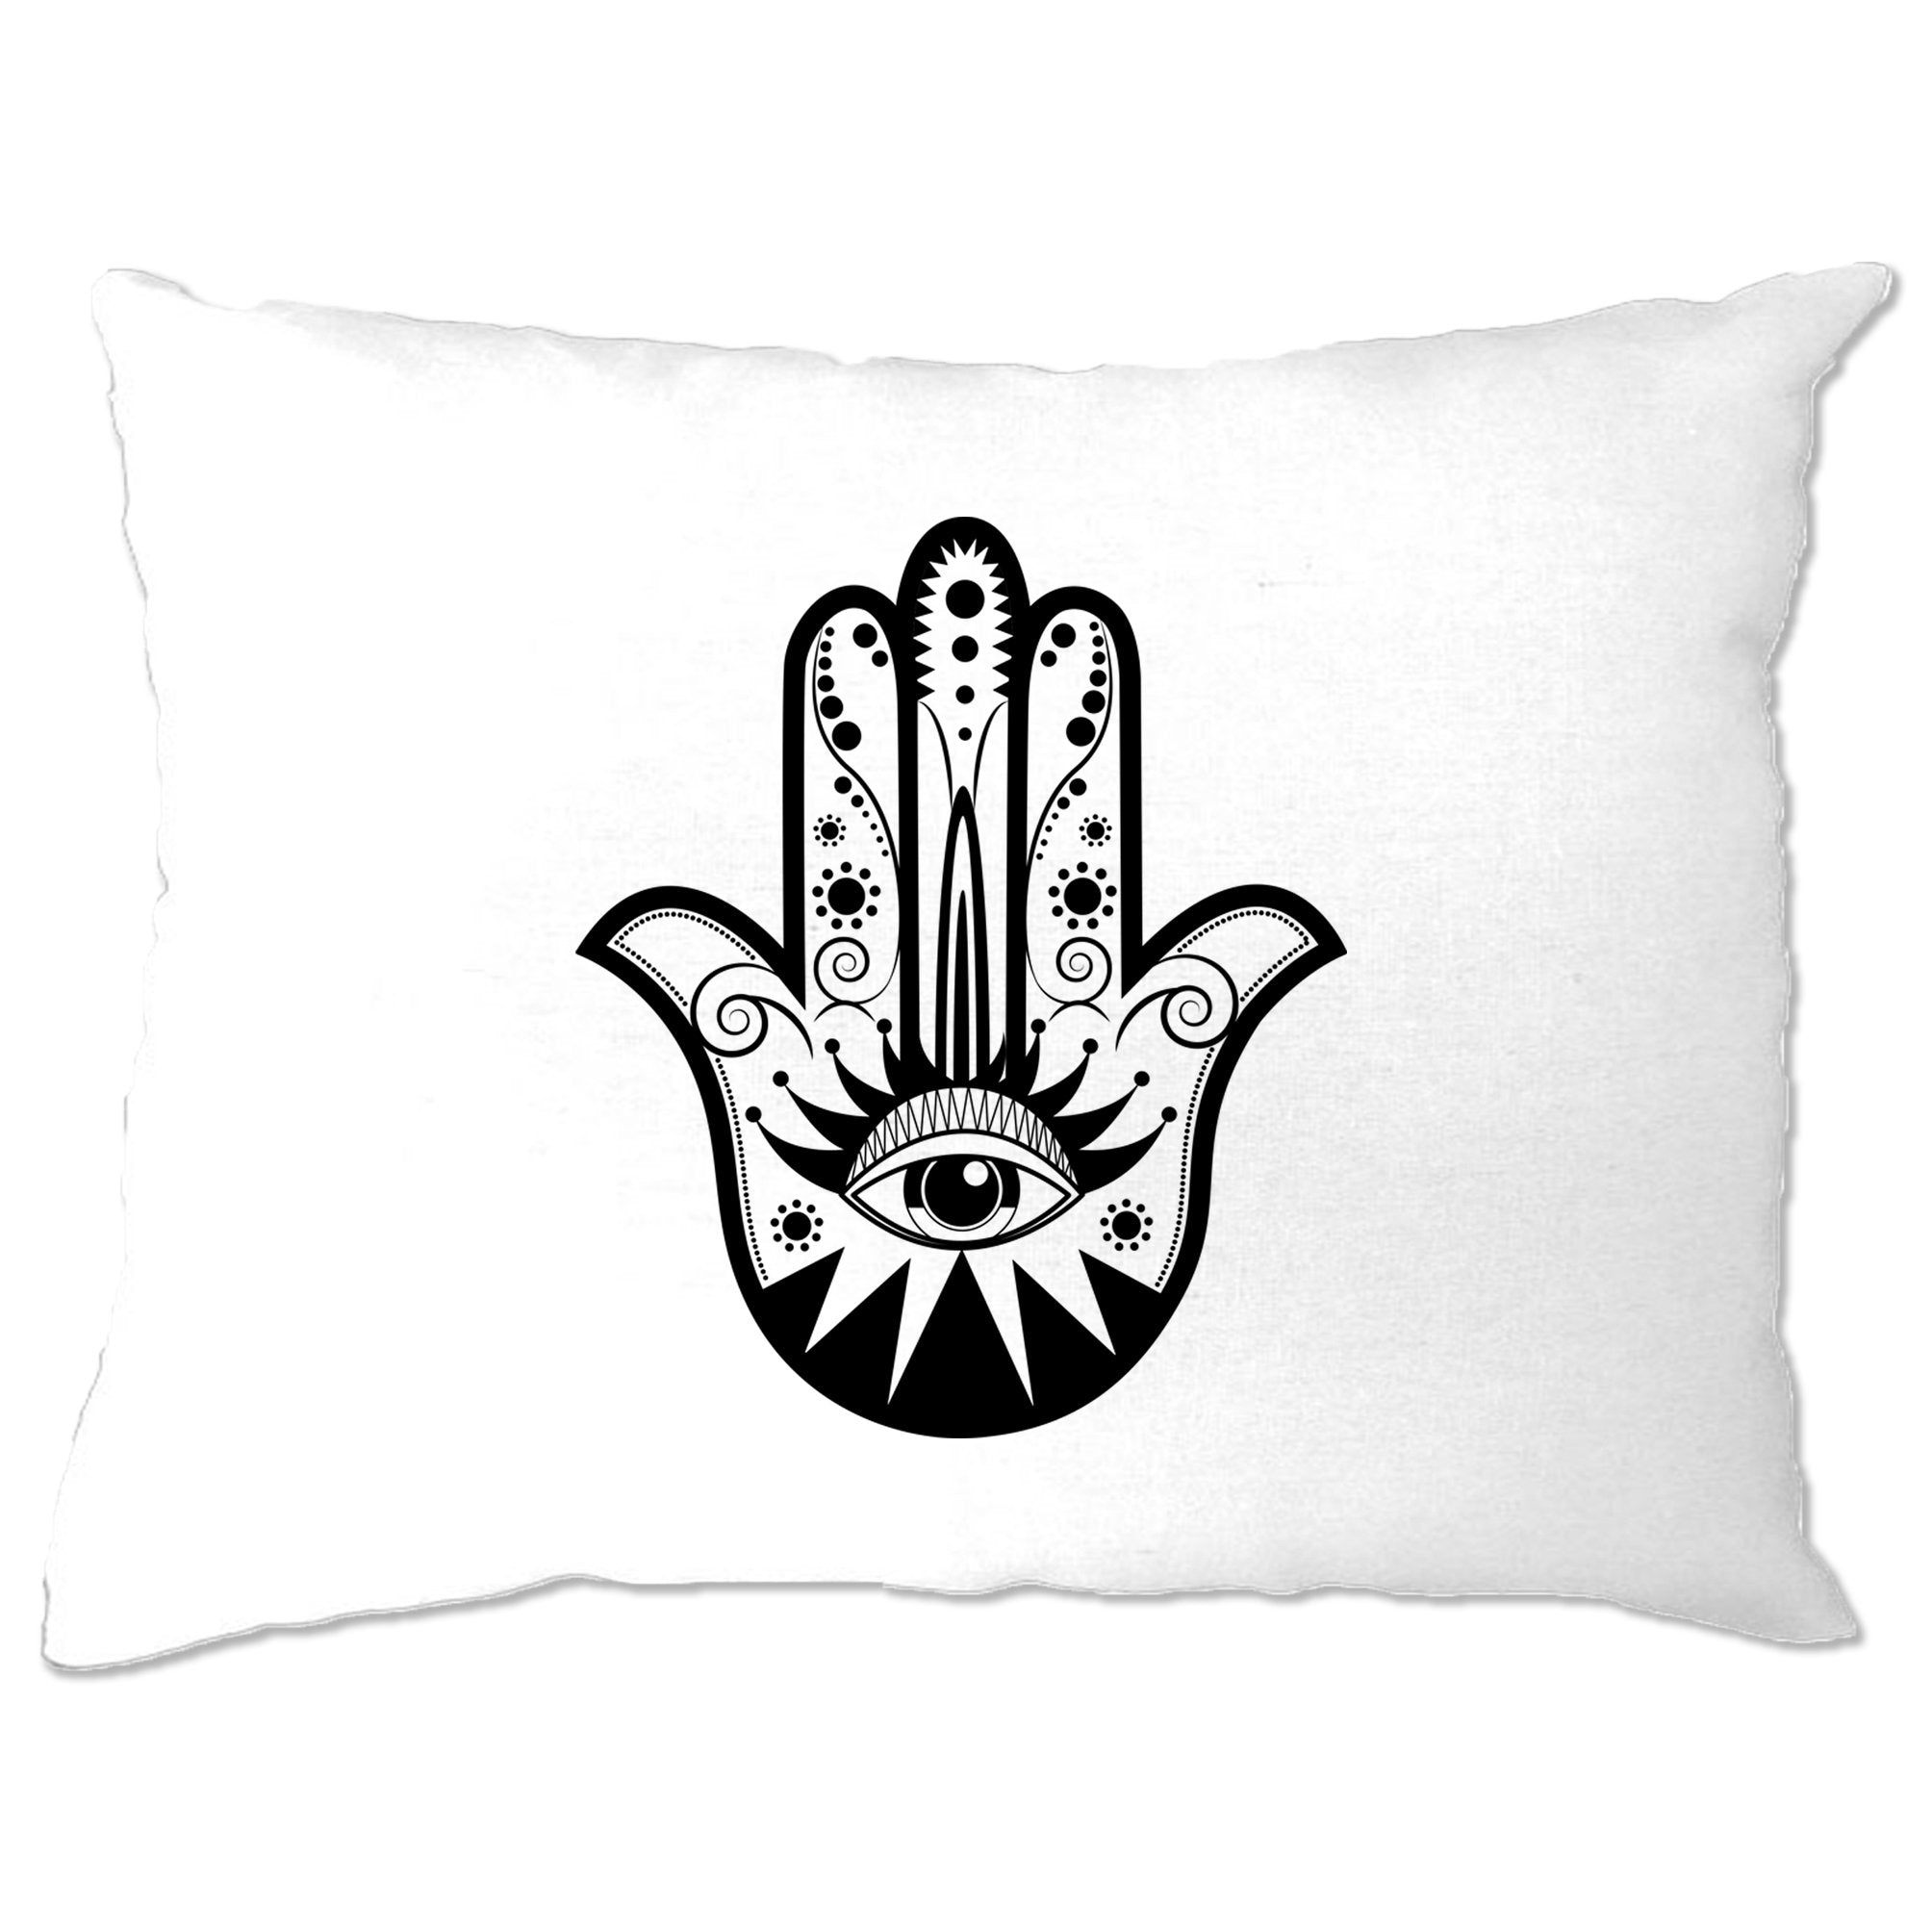 Traditional Art Pillow Case Hamsa Hand Graphic